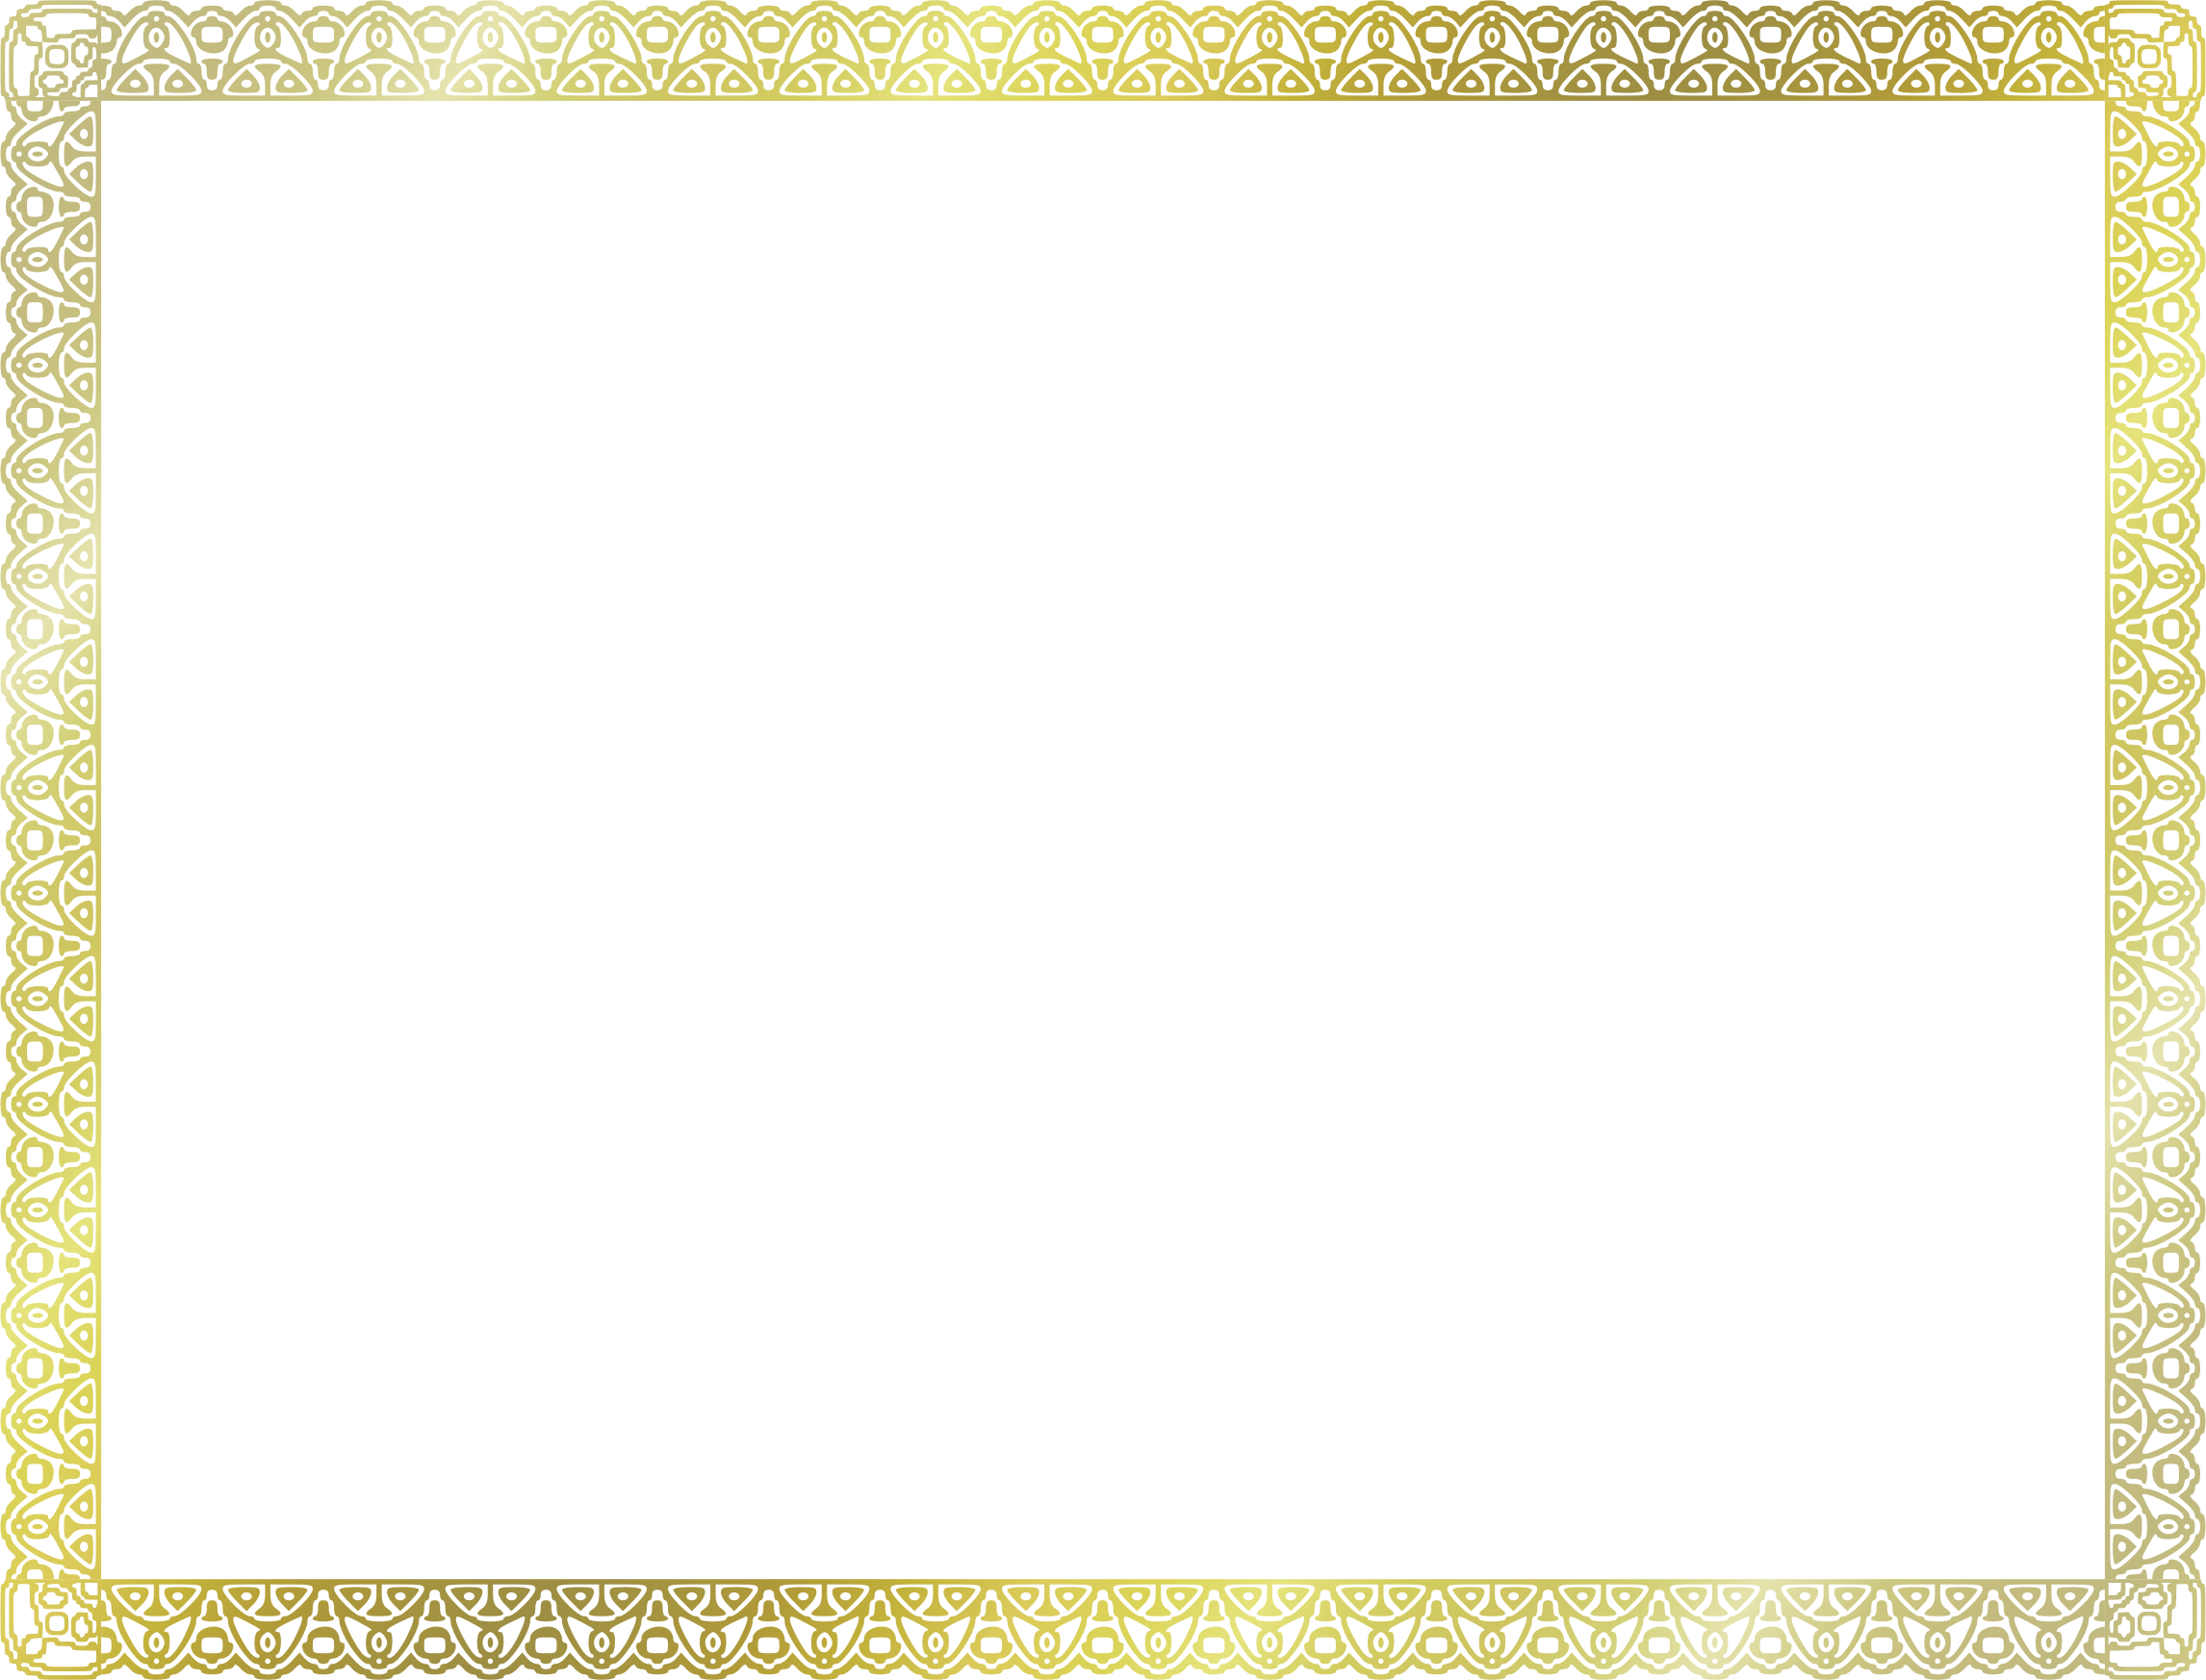 Clipart us size big. Certificate border png